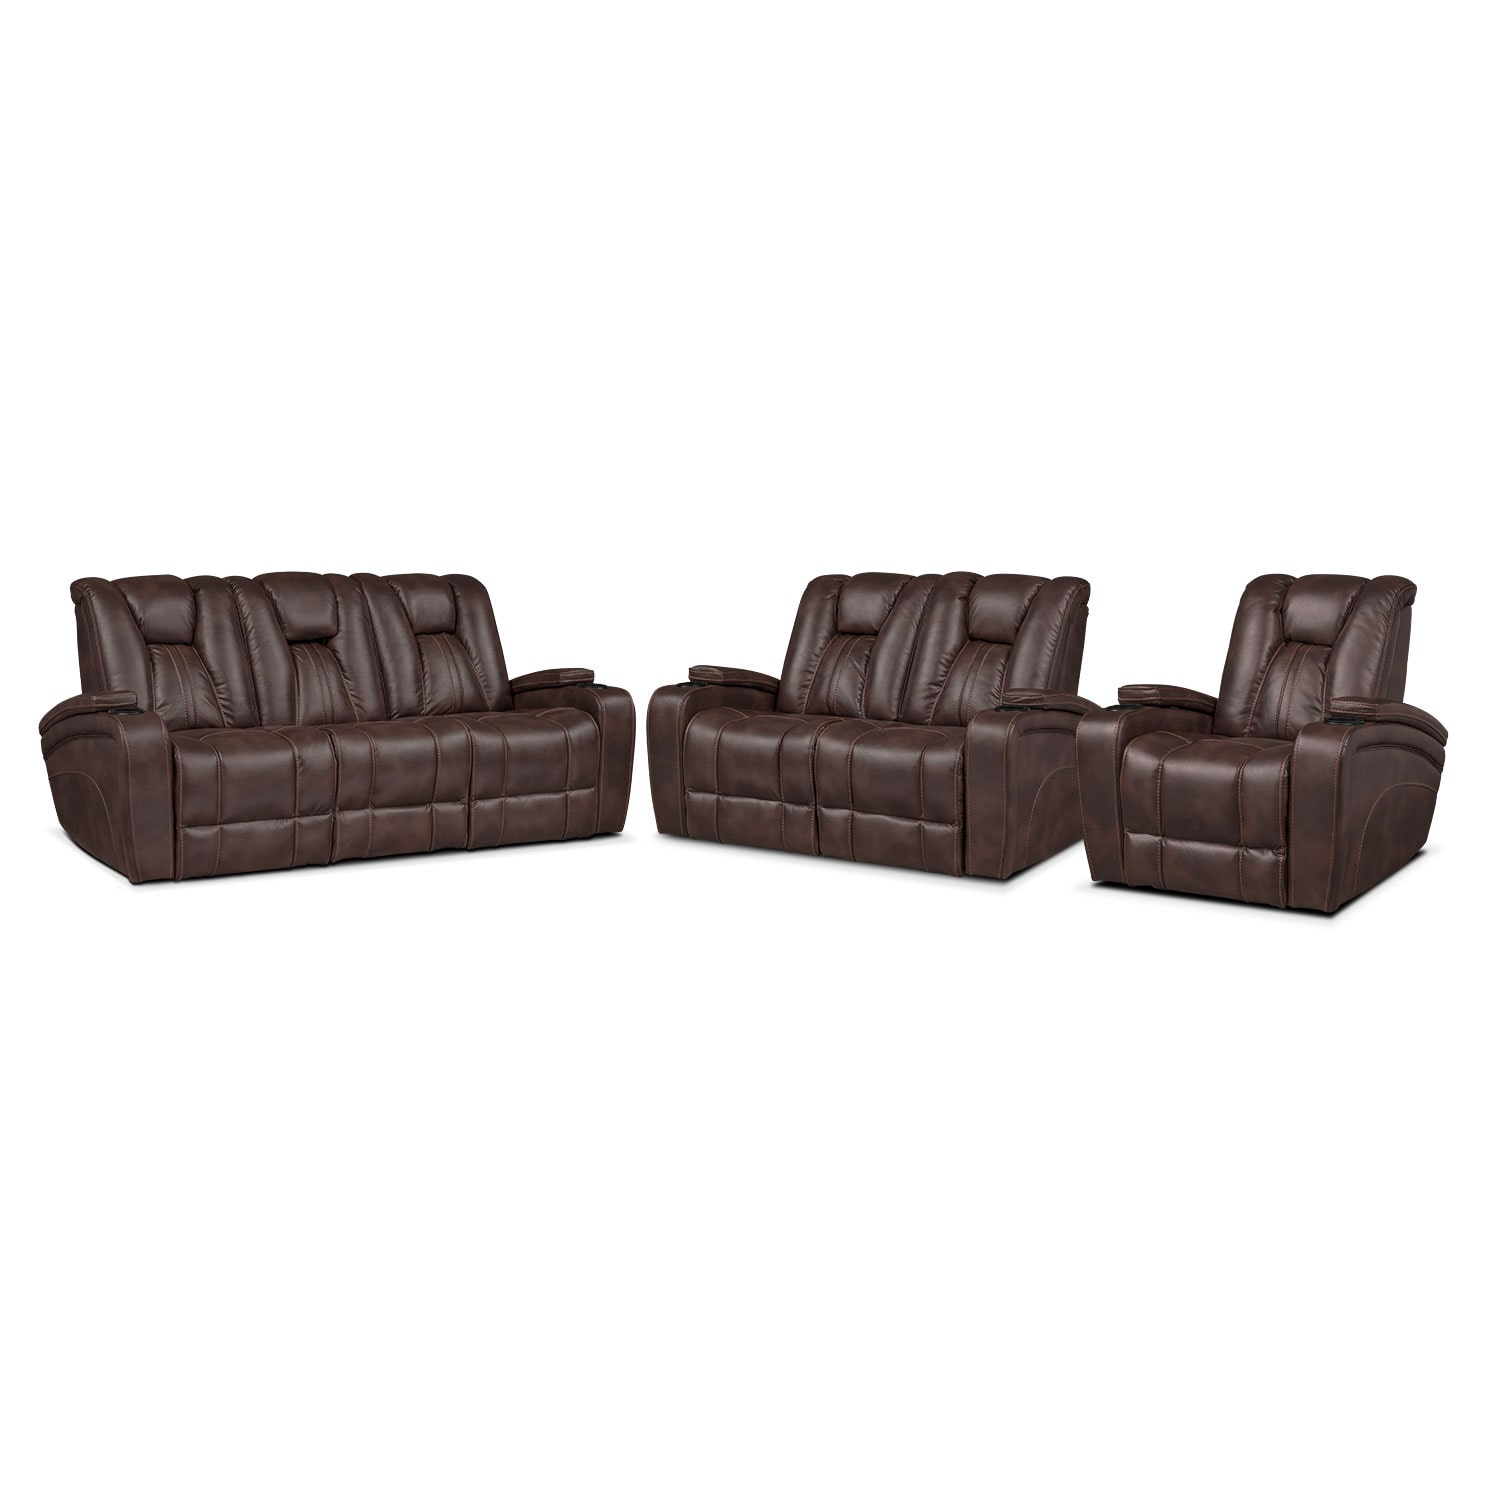 Pulsar Power Reclining Sofa Power Reclining Loveseat and Power Recliner Set - Brown by One80  sc 1 st  American Signature Furniture & Pulsar Power Reclining Sofa Power Reclining Loveseat and Power ... islam-shia.org